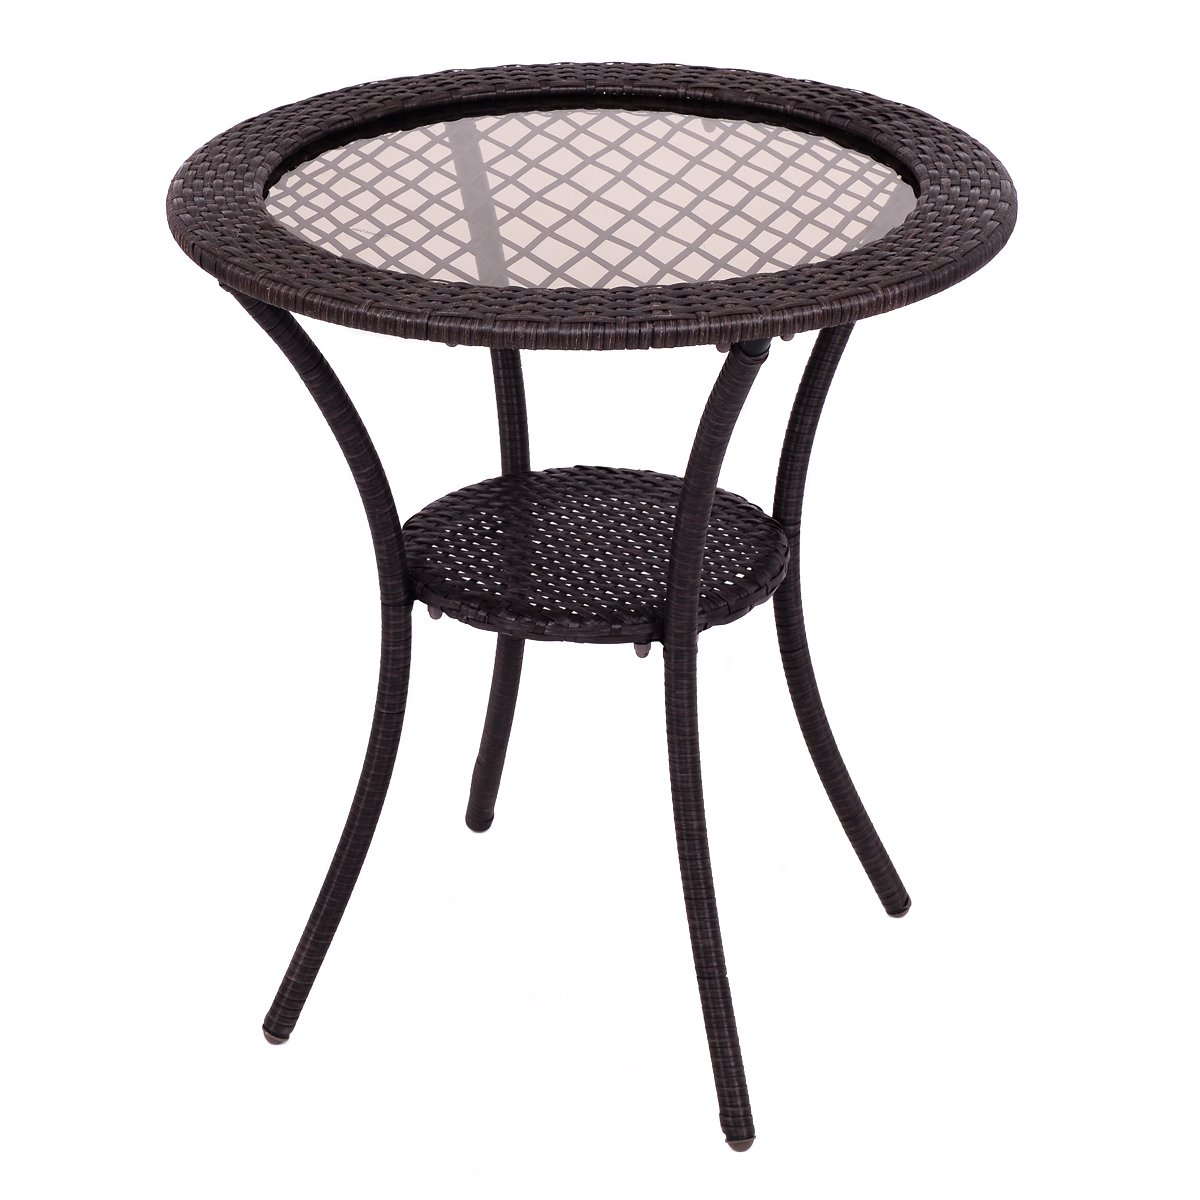 Round Rattan Wicker Coffee Table Glass Top Steel Frame Patio Furniture W/  Shelf